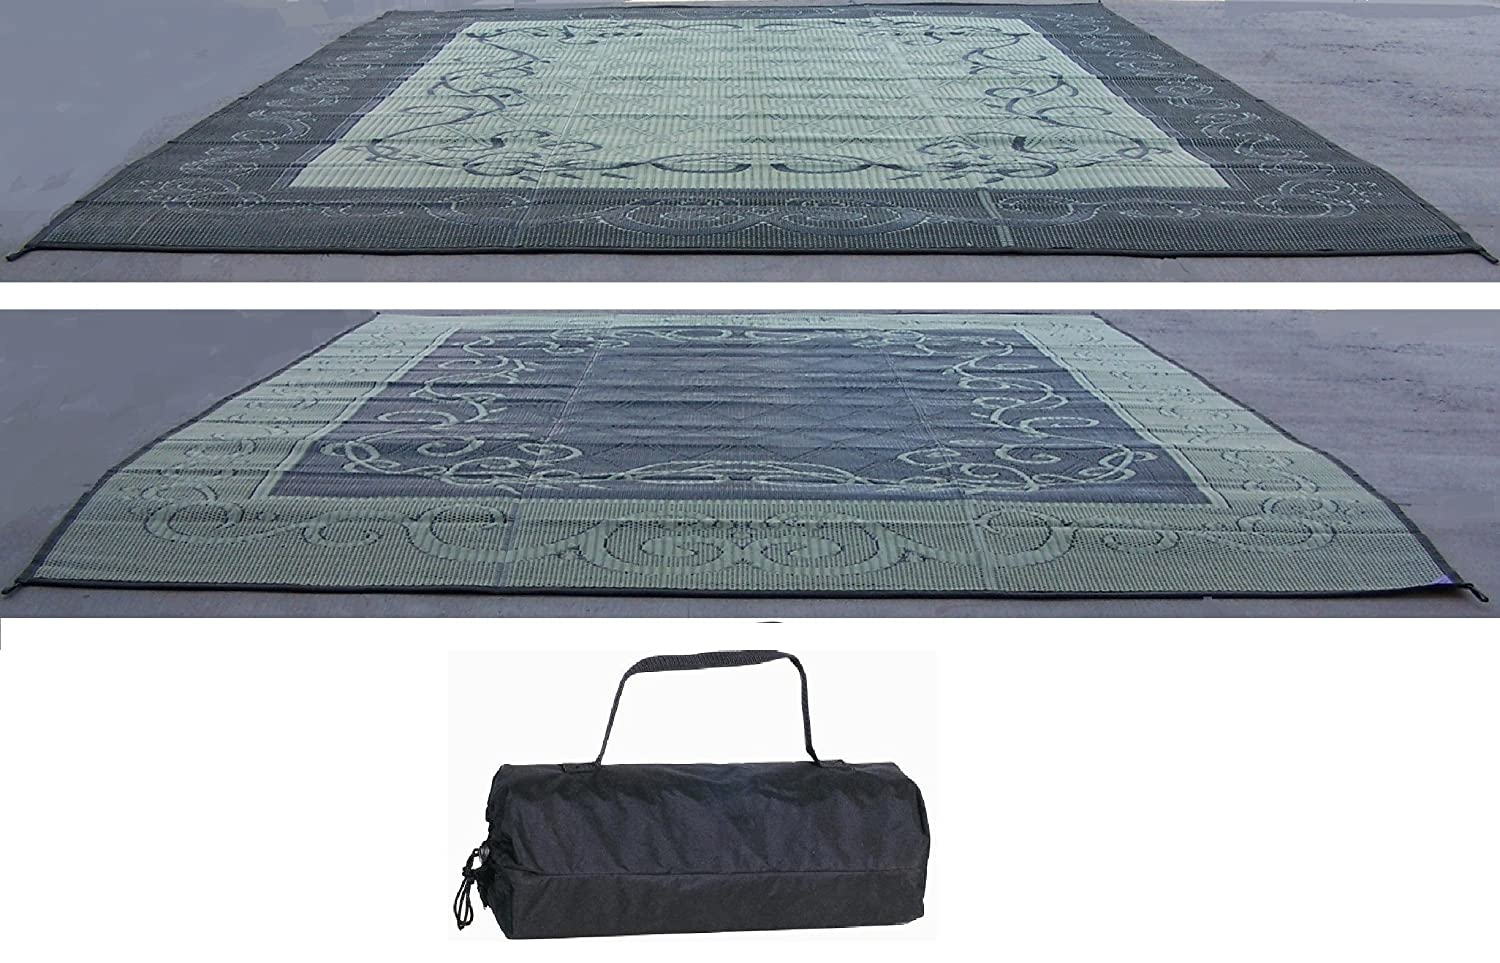 RV TRAILER PATIO BEACH CAMPING REVERSIBLE OUTDOOR MAT 9x12